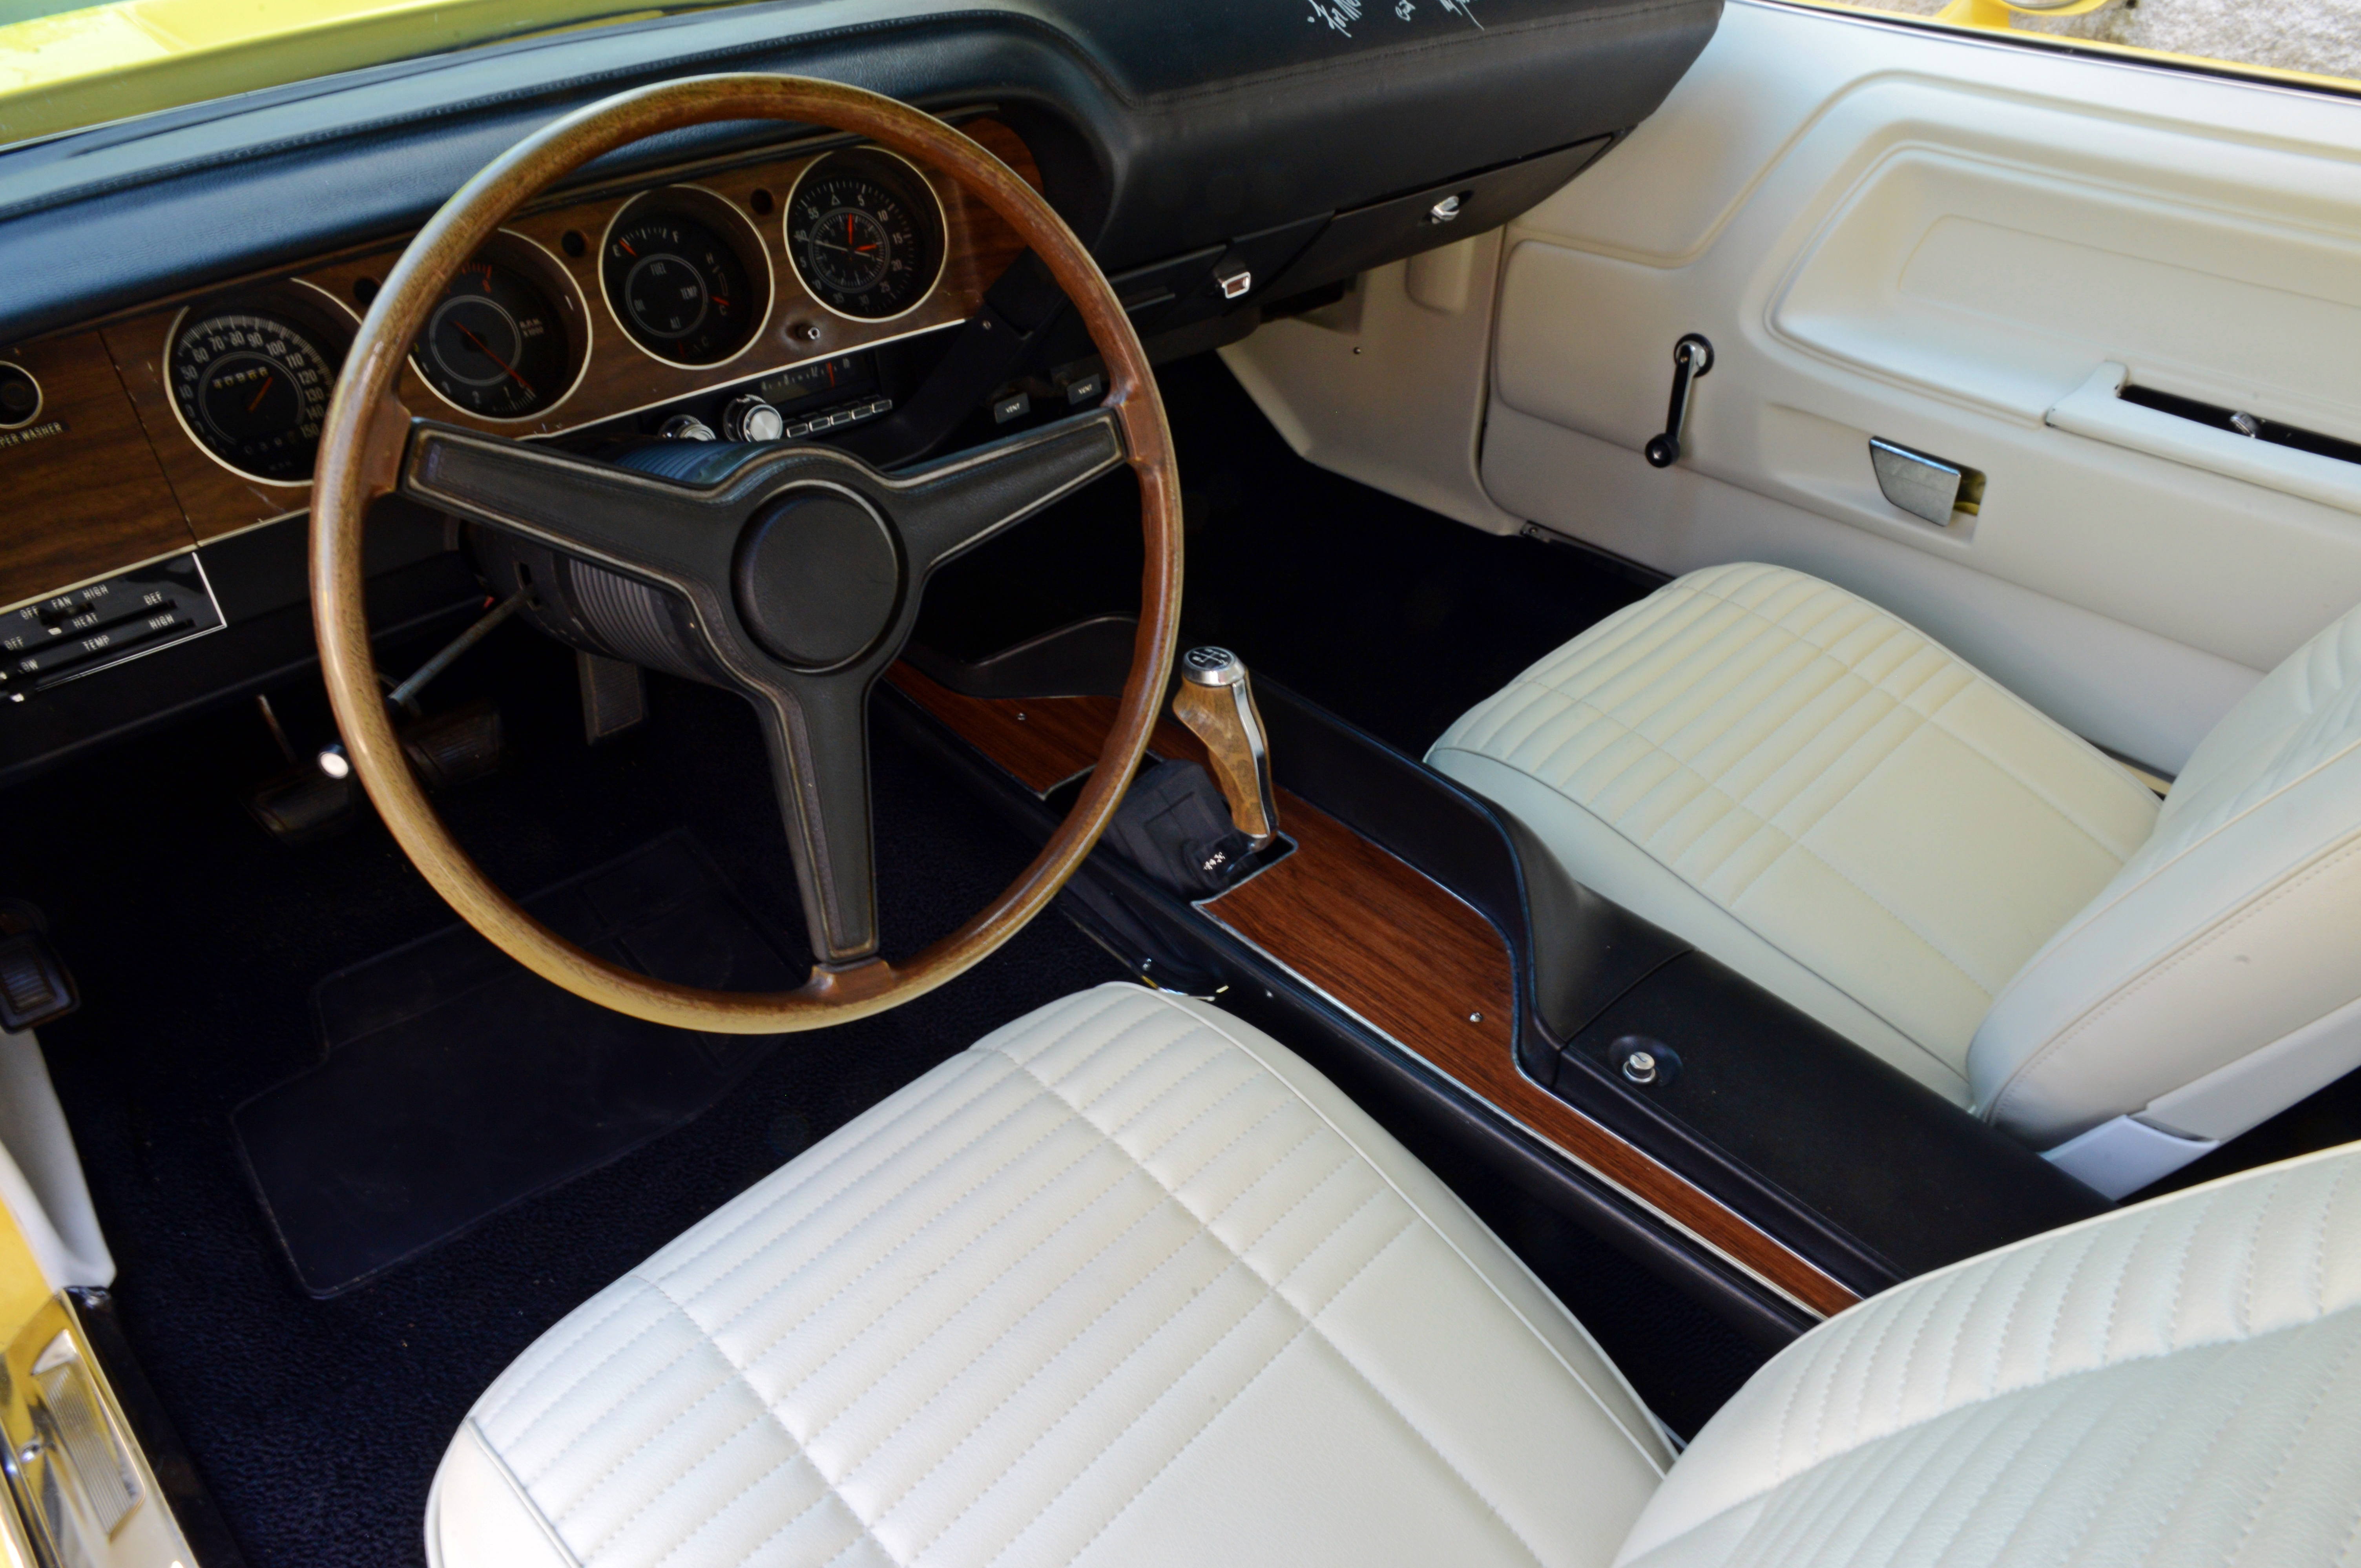 The white interior (and white vinyl top) nicely accent the Challenger's Top Banana yellow paint outside. Pistol Grip shifter rows a four-speed trans linked to the Dana axle.